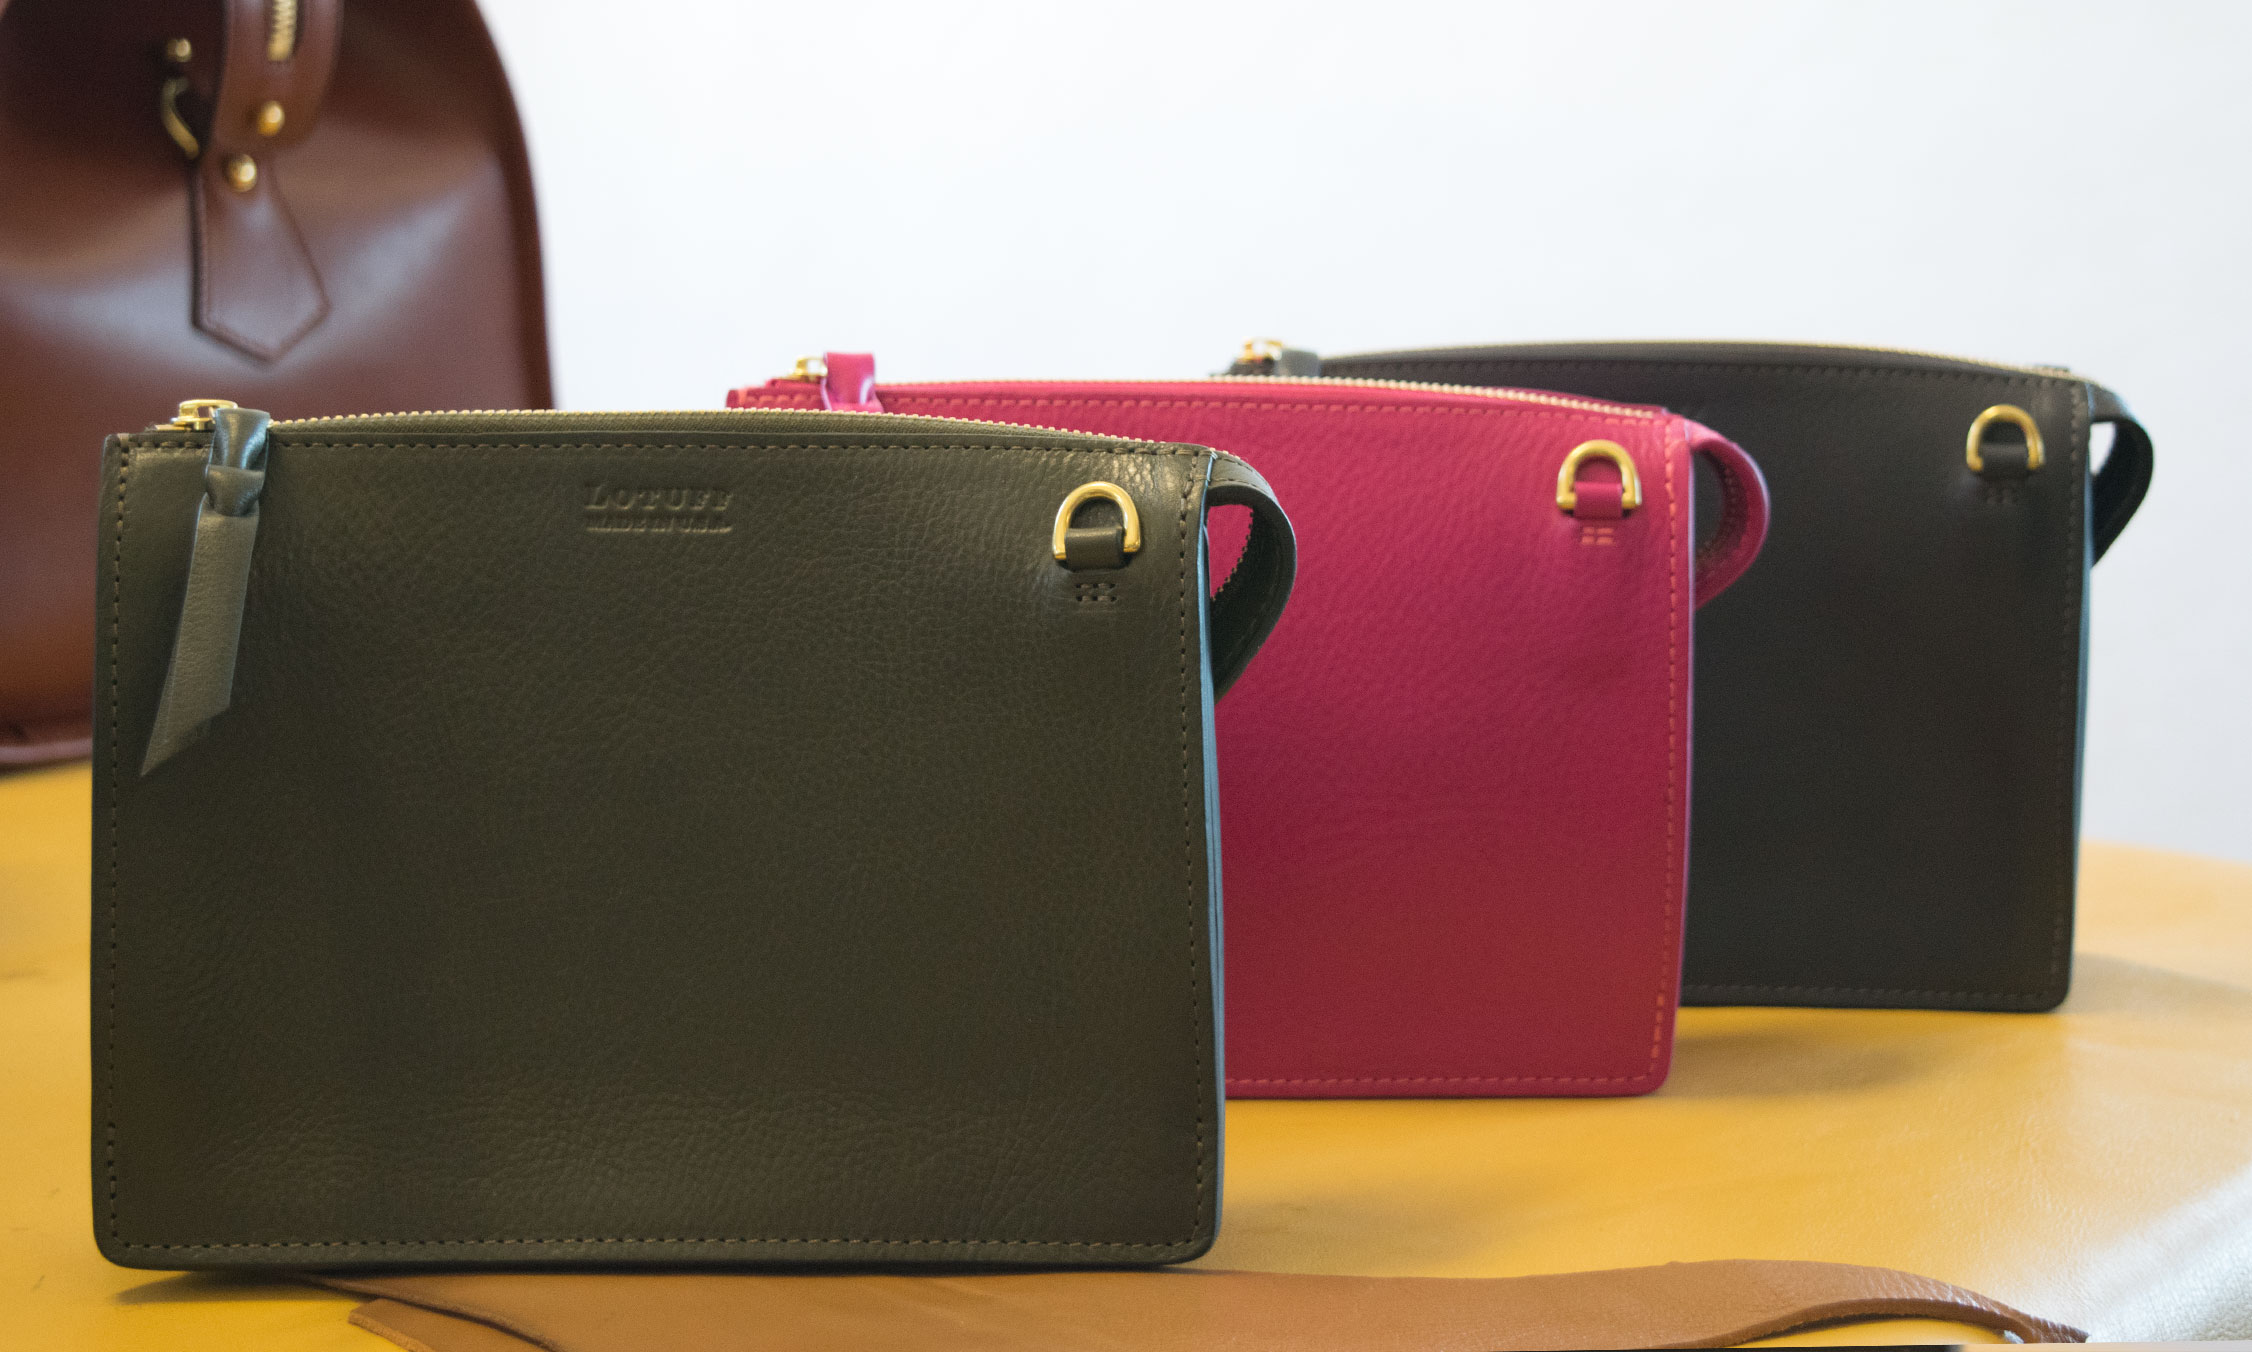 Lotuff Leather Tripp handbag in olive green, magenta, and elephant.